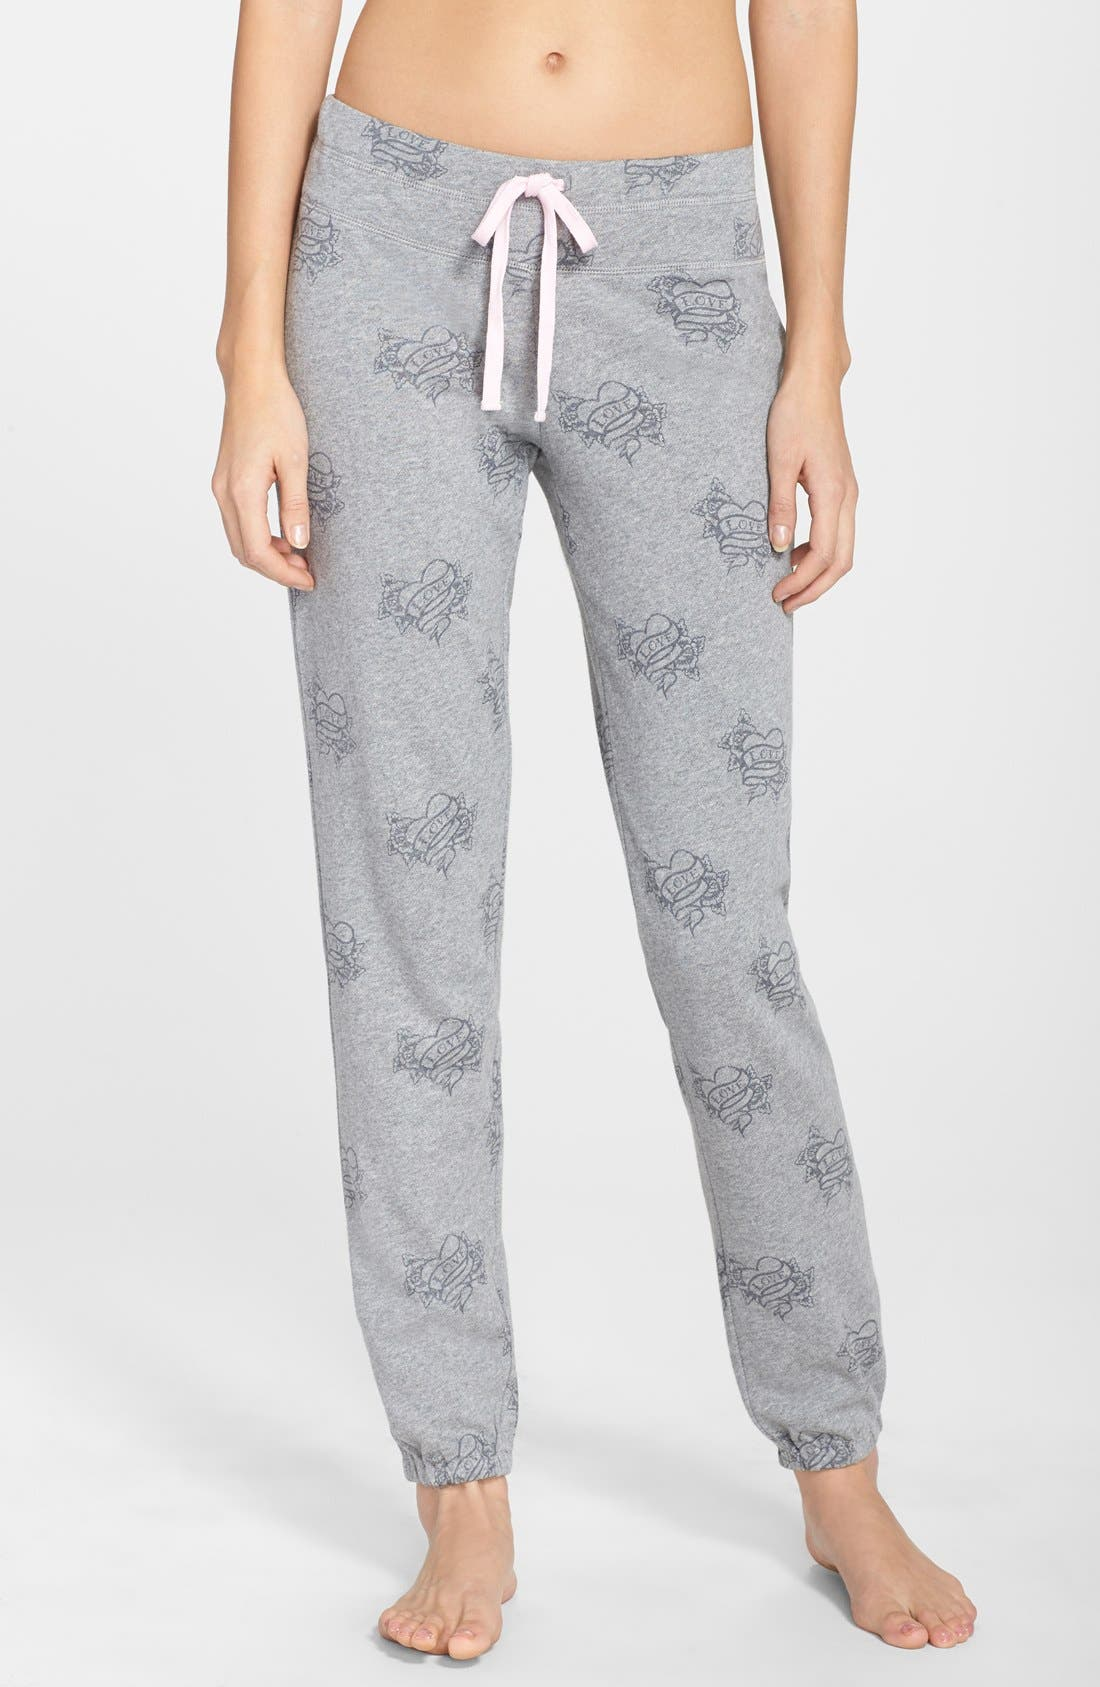 Main Image - PJ Salvage 'Love More' Tattoo Print Sweatpants